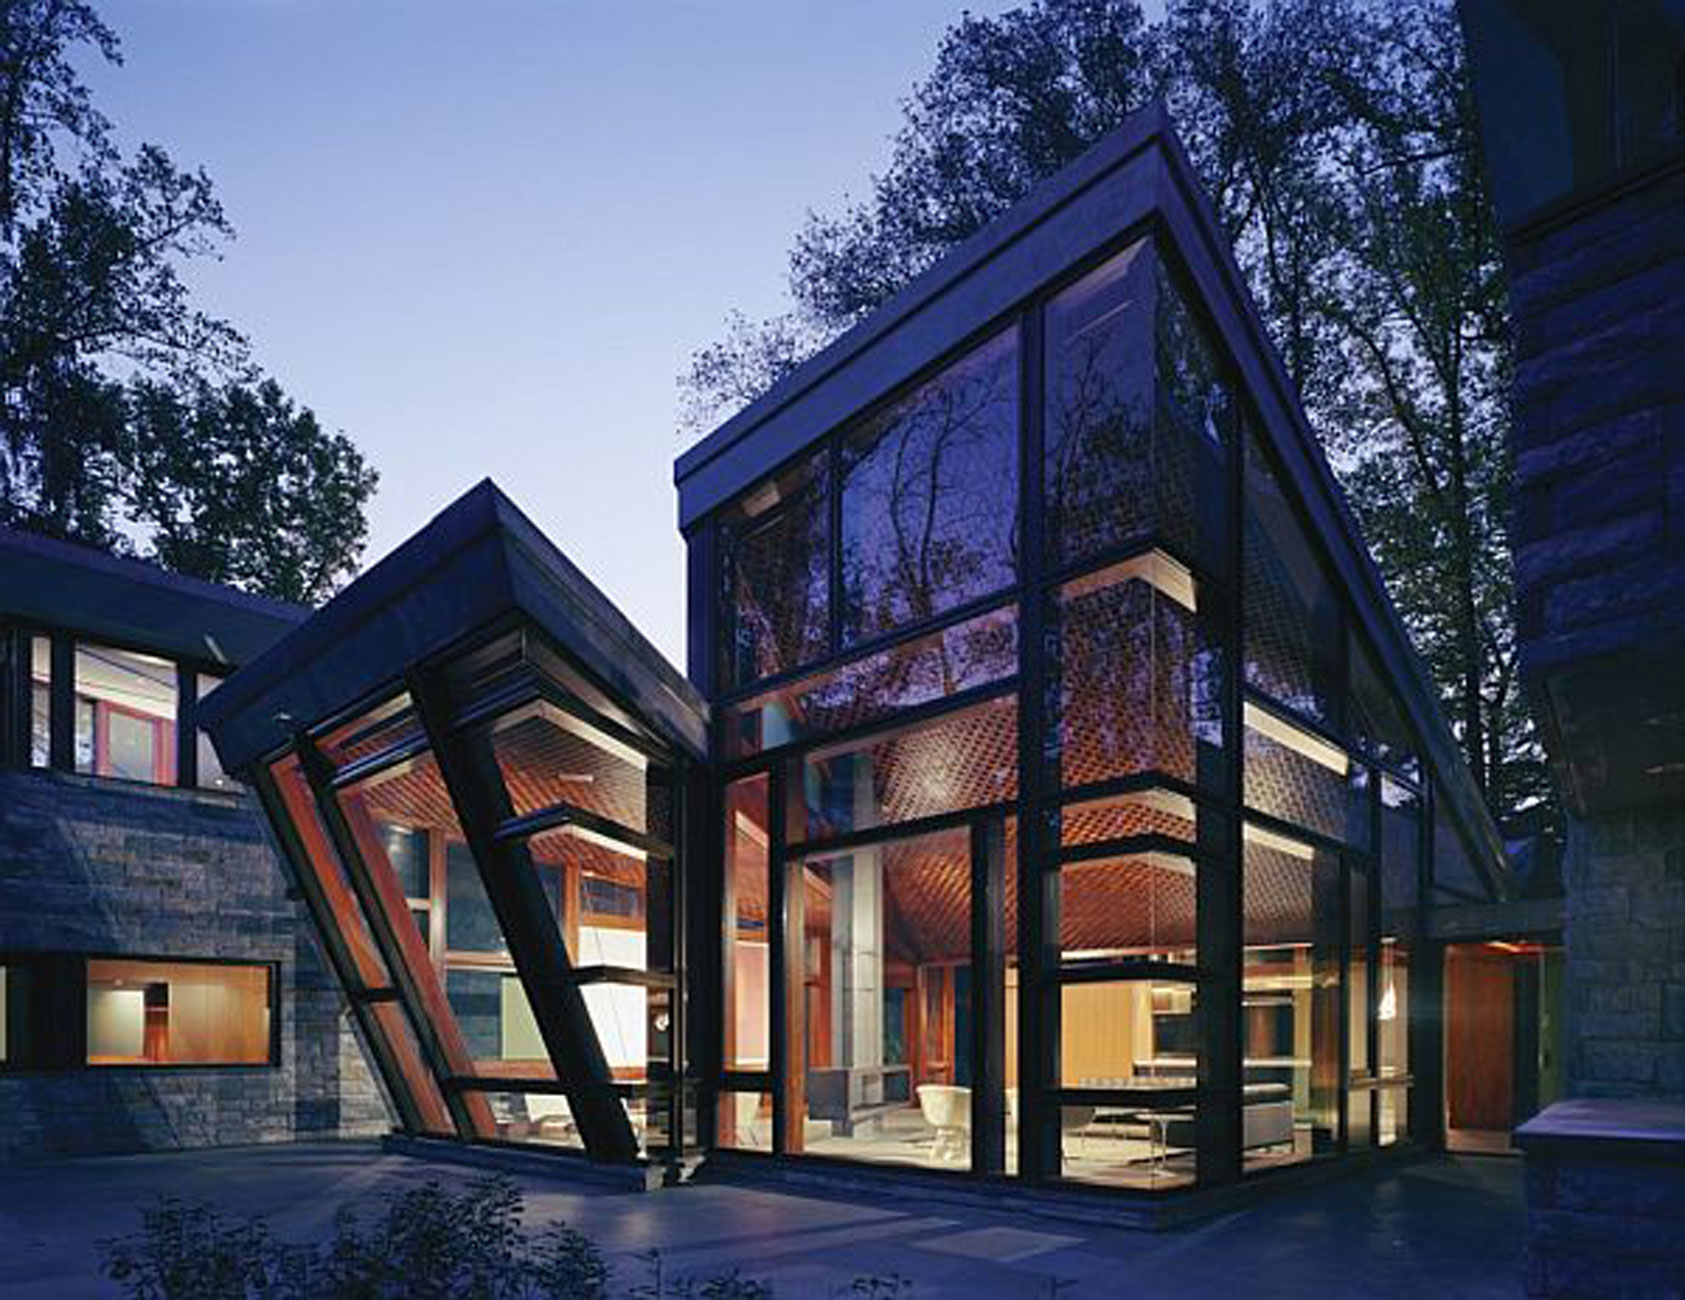 Sunday evening art gallery blog glass houses humoring for Glass house design architecture